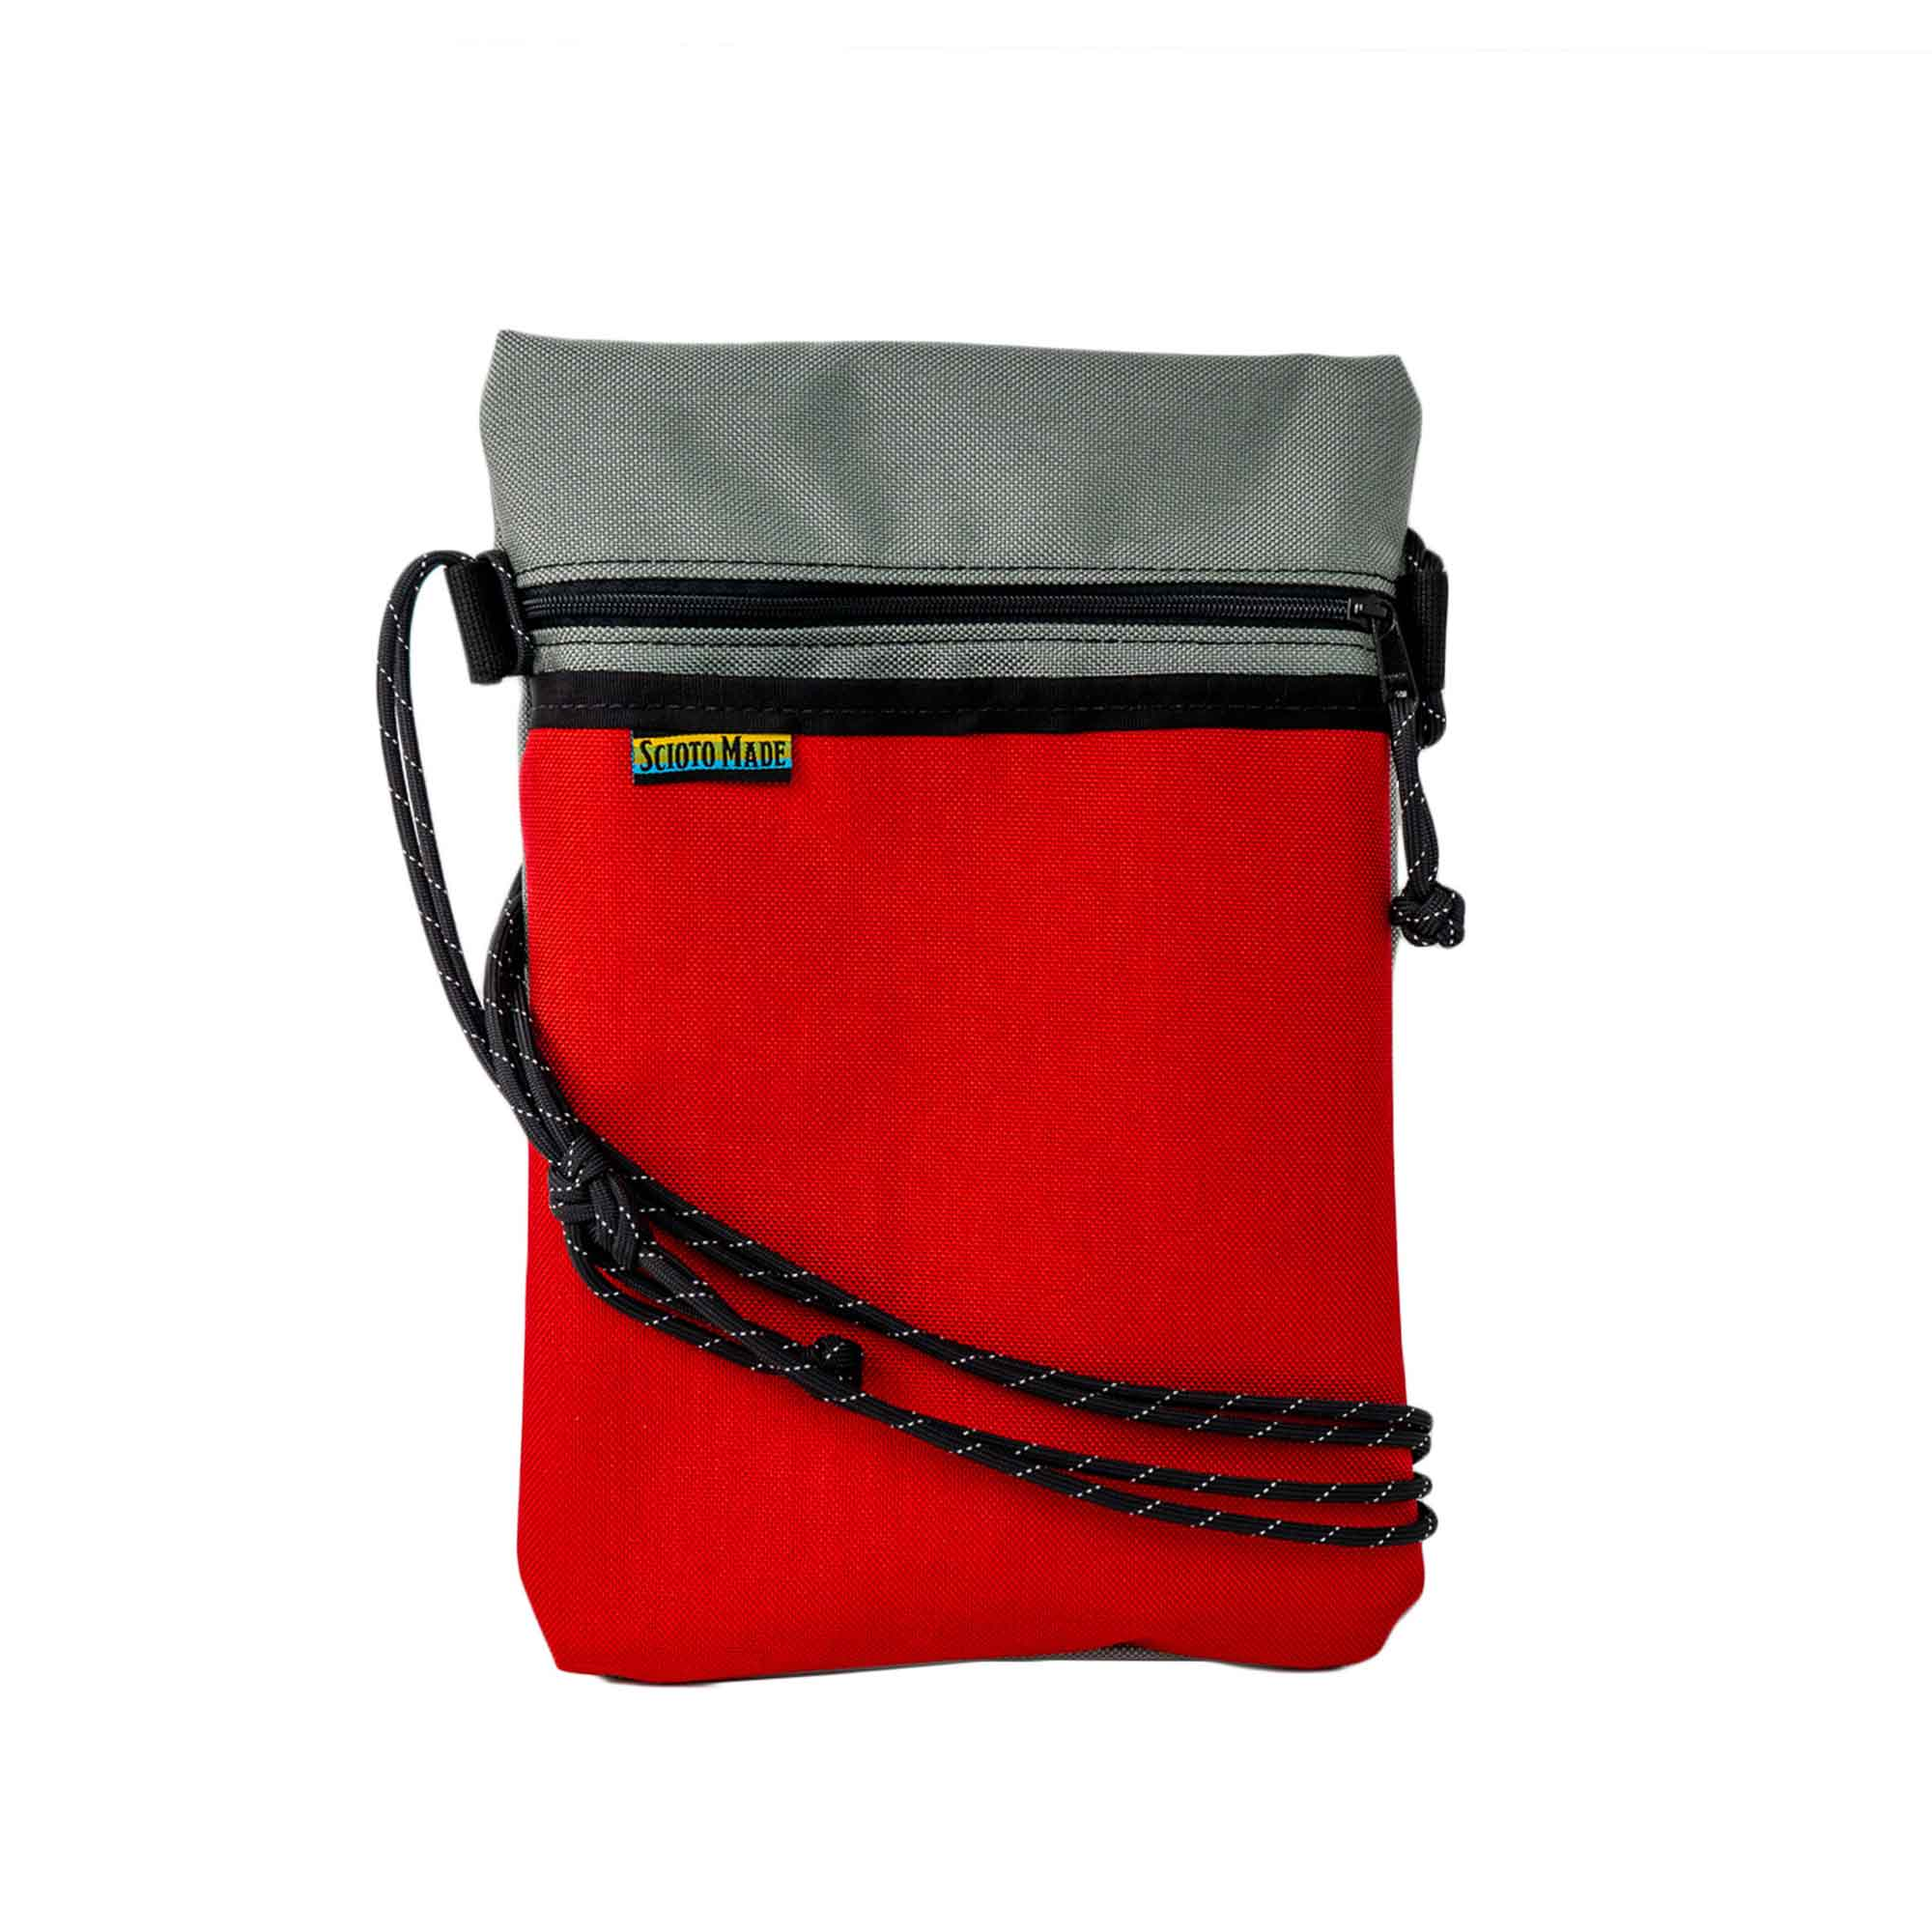 Scioto Made crossbody bag xover red gray front view 01